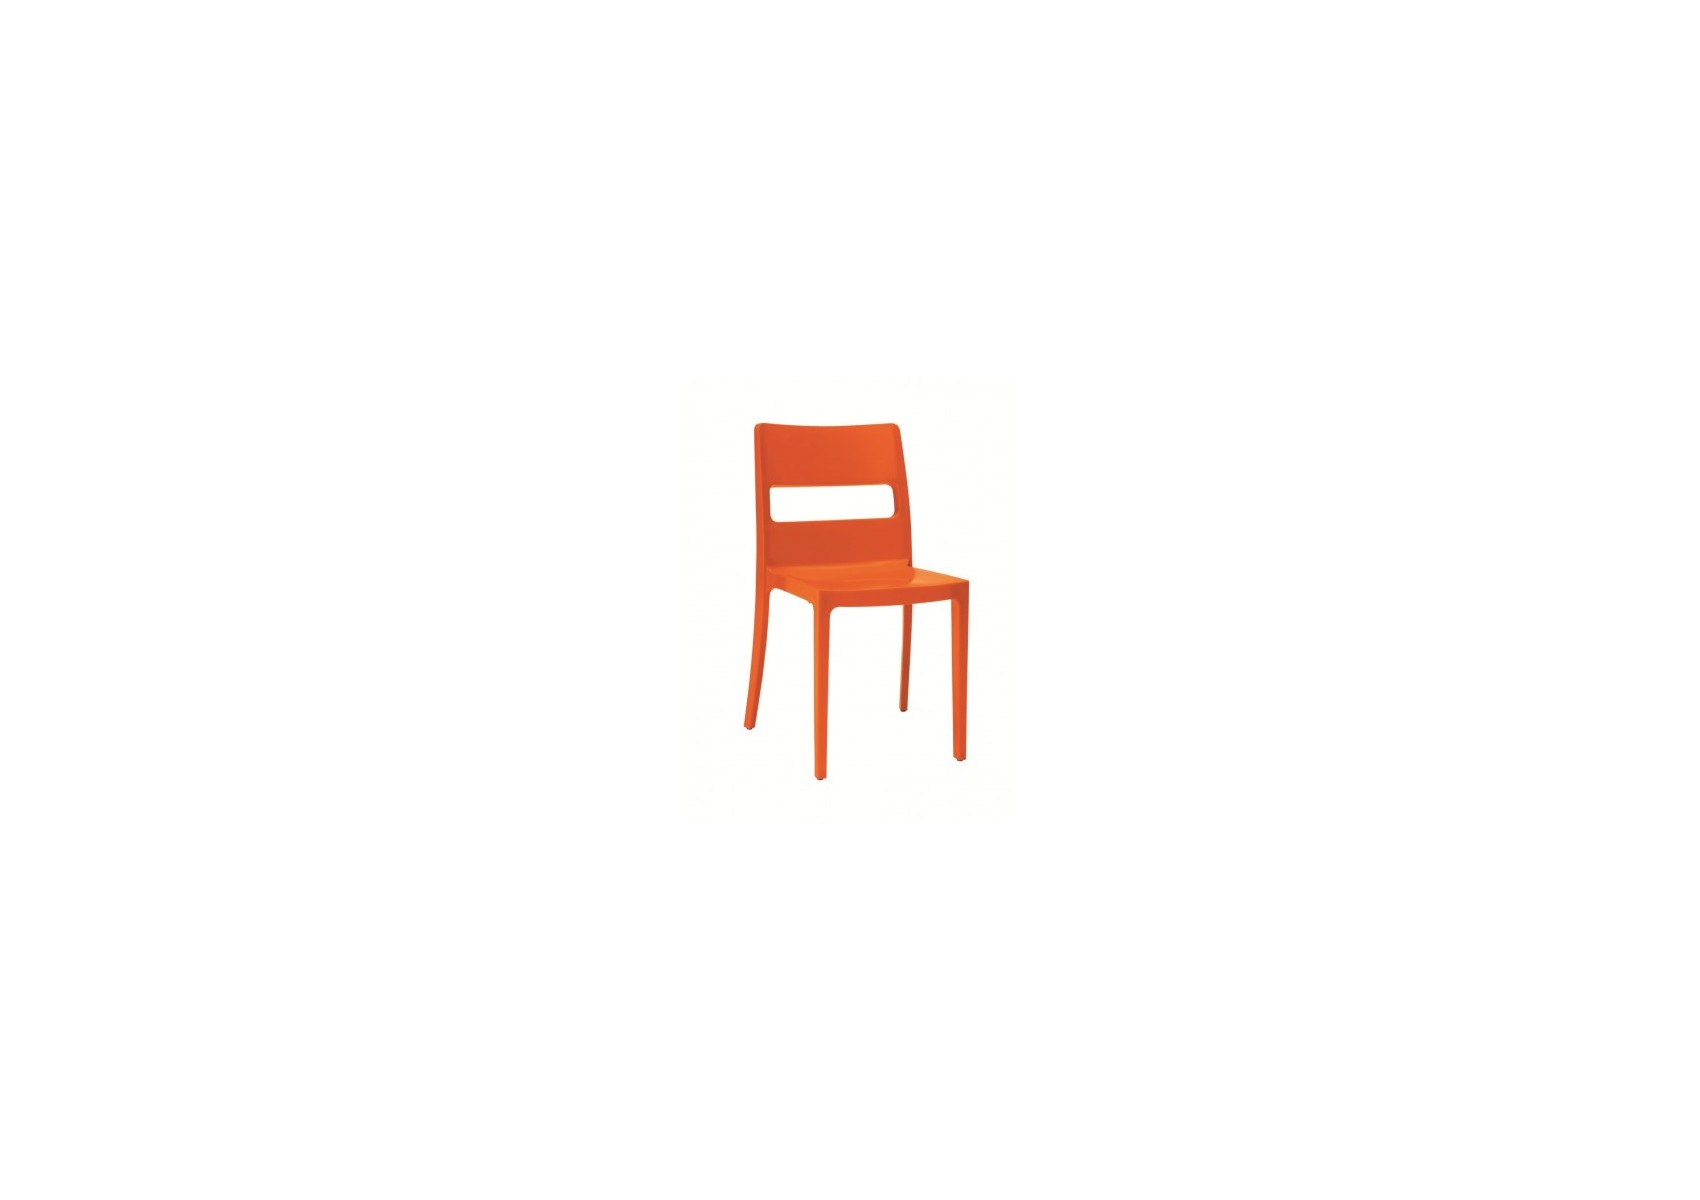 4 chaises design sai orange destockage boite design - Destockage chaise design ...